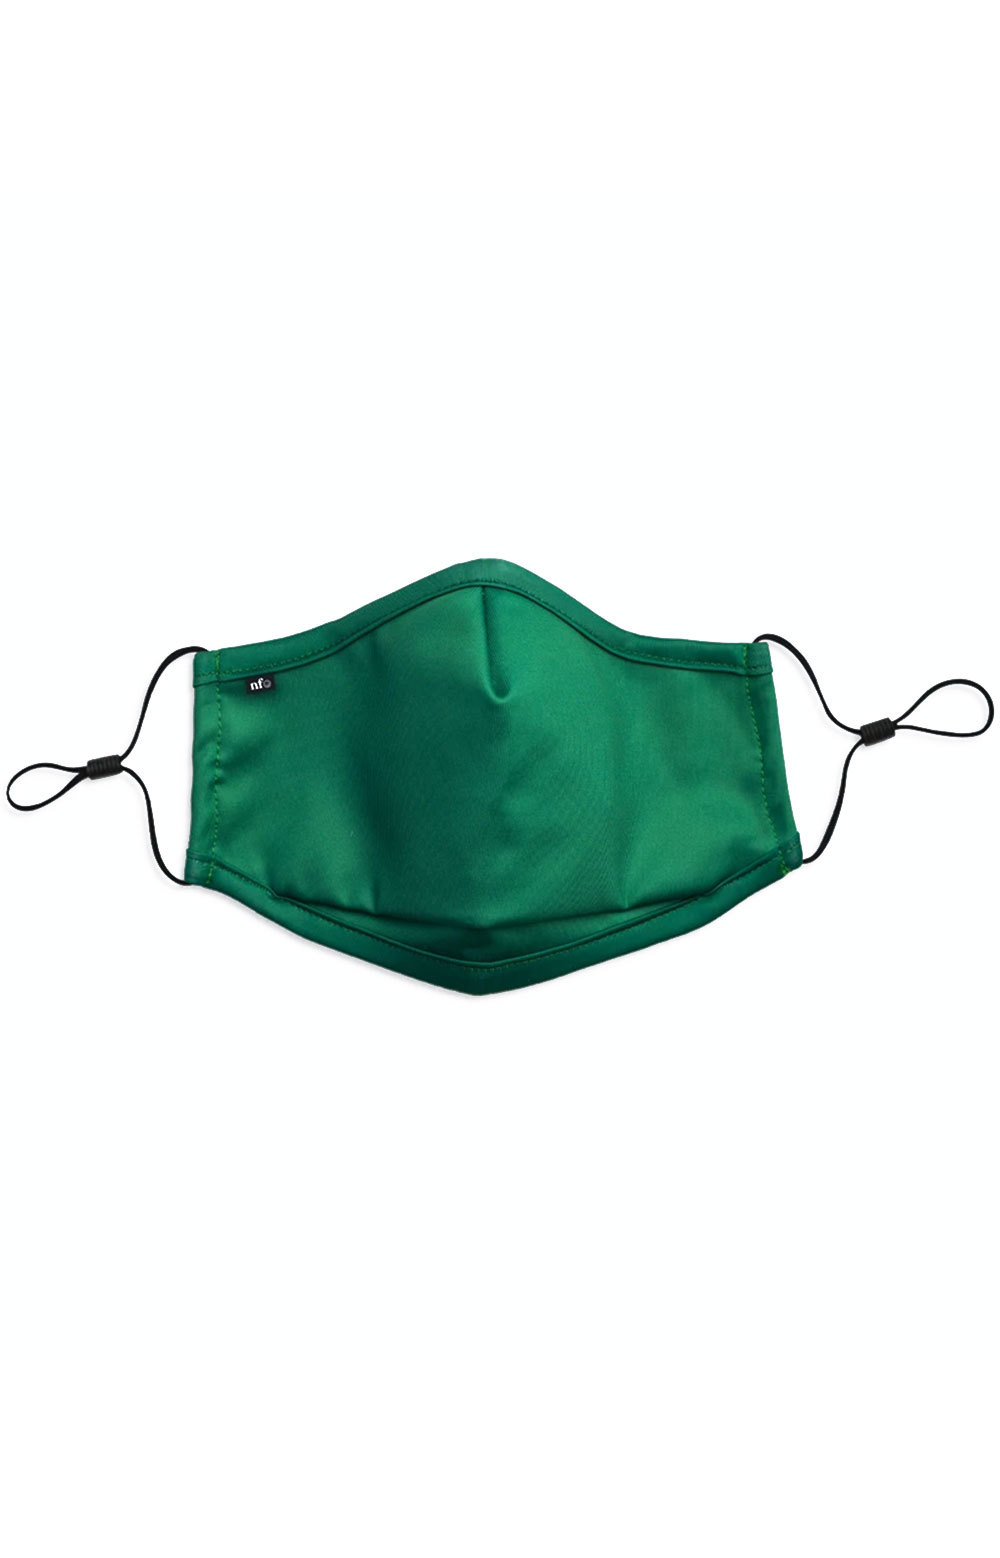 Kids Anti Bacterial Knit Face Mask - Green